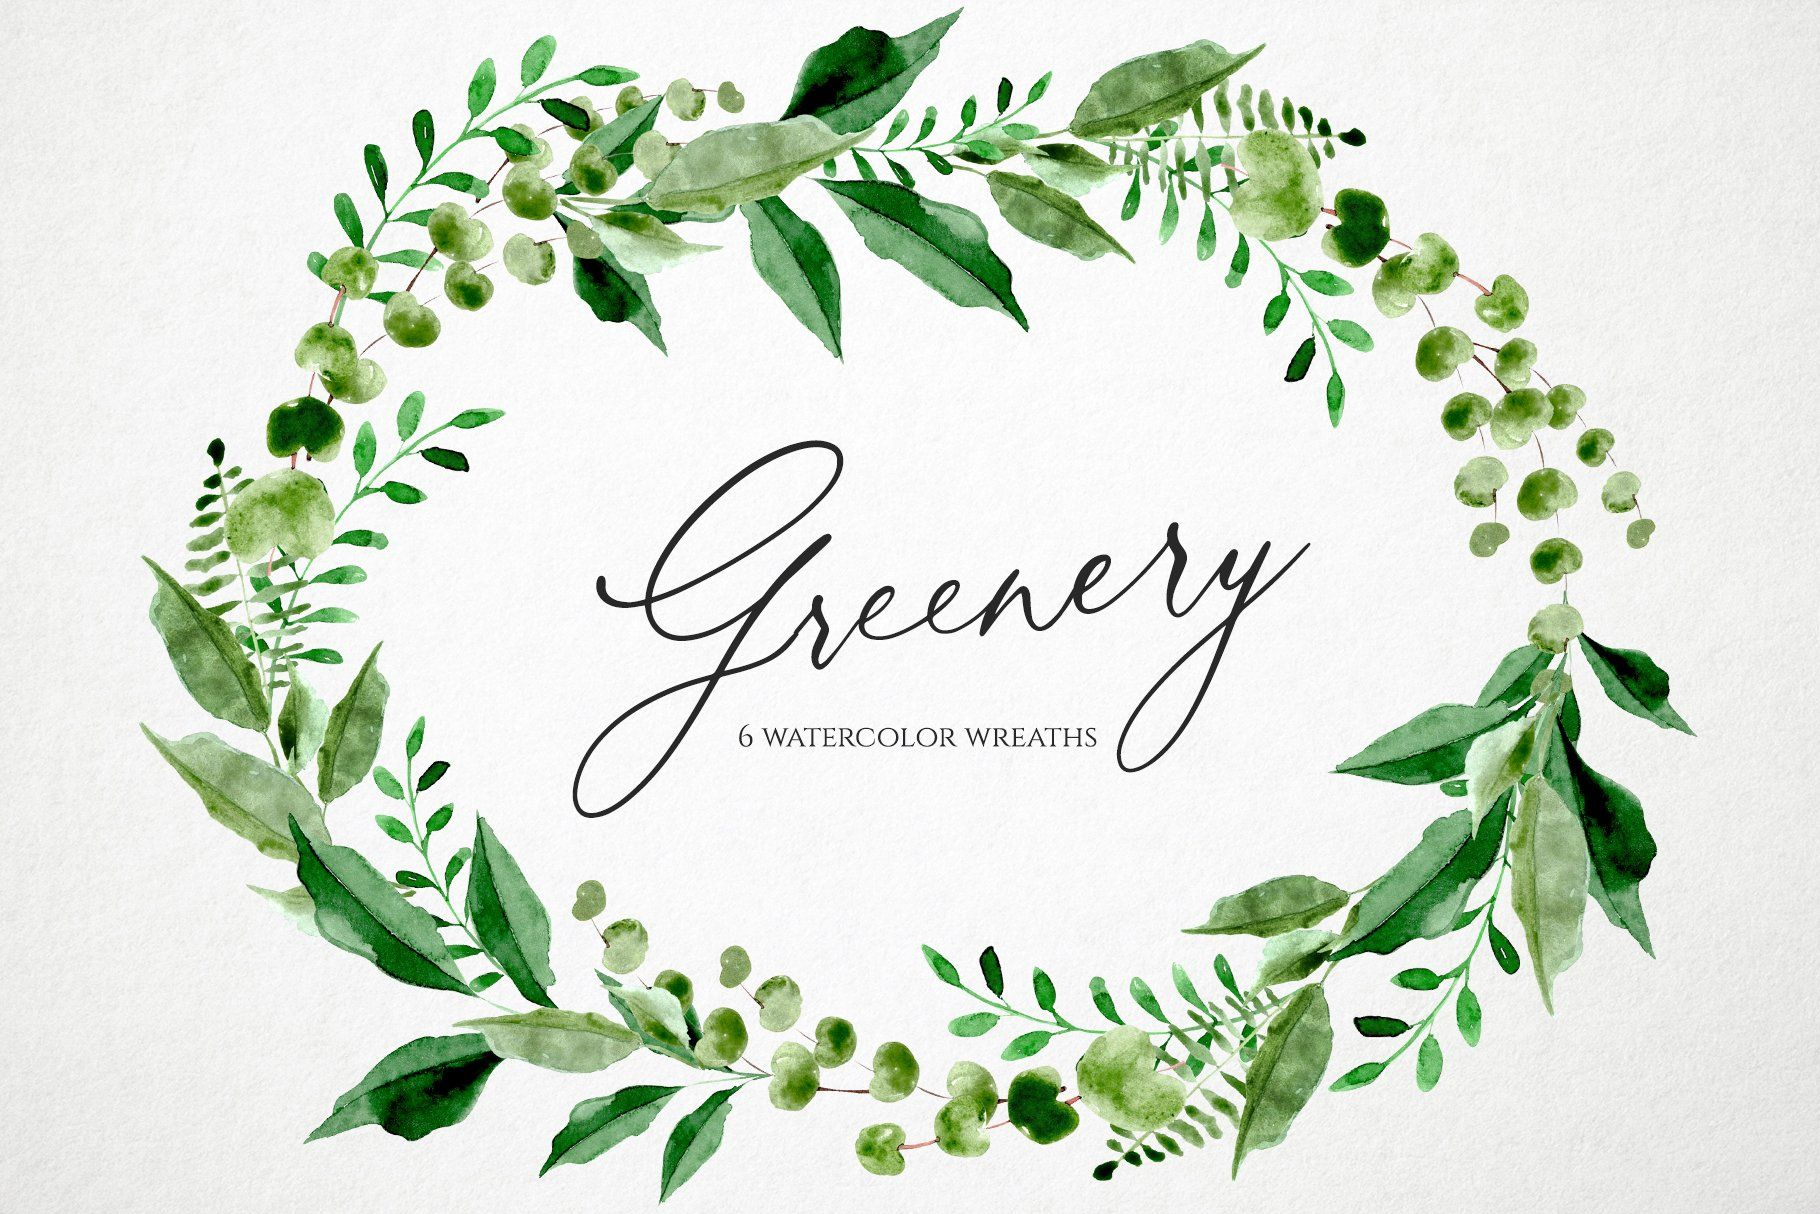 Watercolor Green Leaves Wreaths Set Ad Projects Logo Branding Receive Ad Wreath Watercolor Wreath Clip Art Clip Art